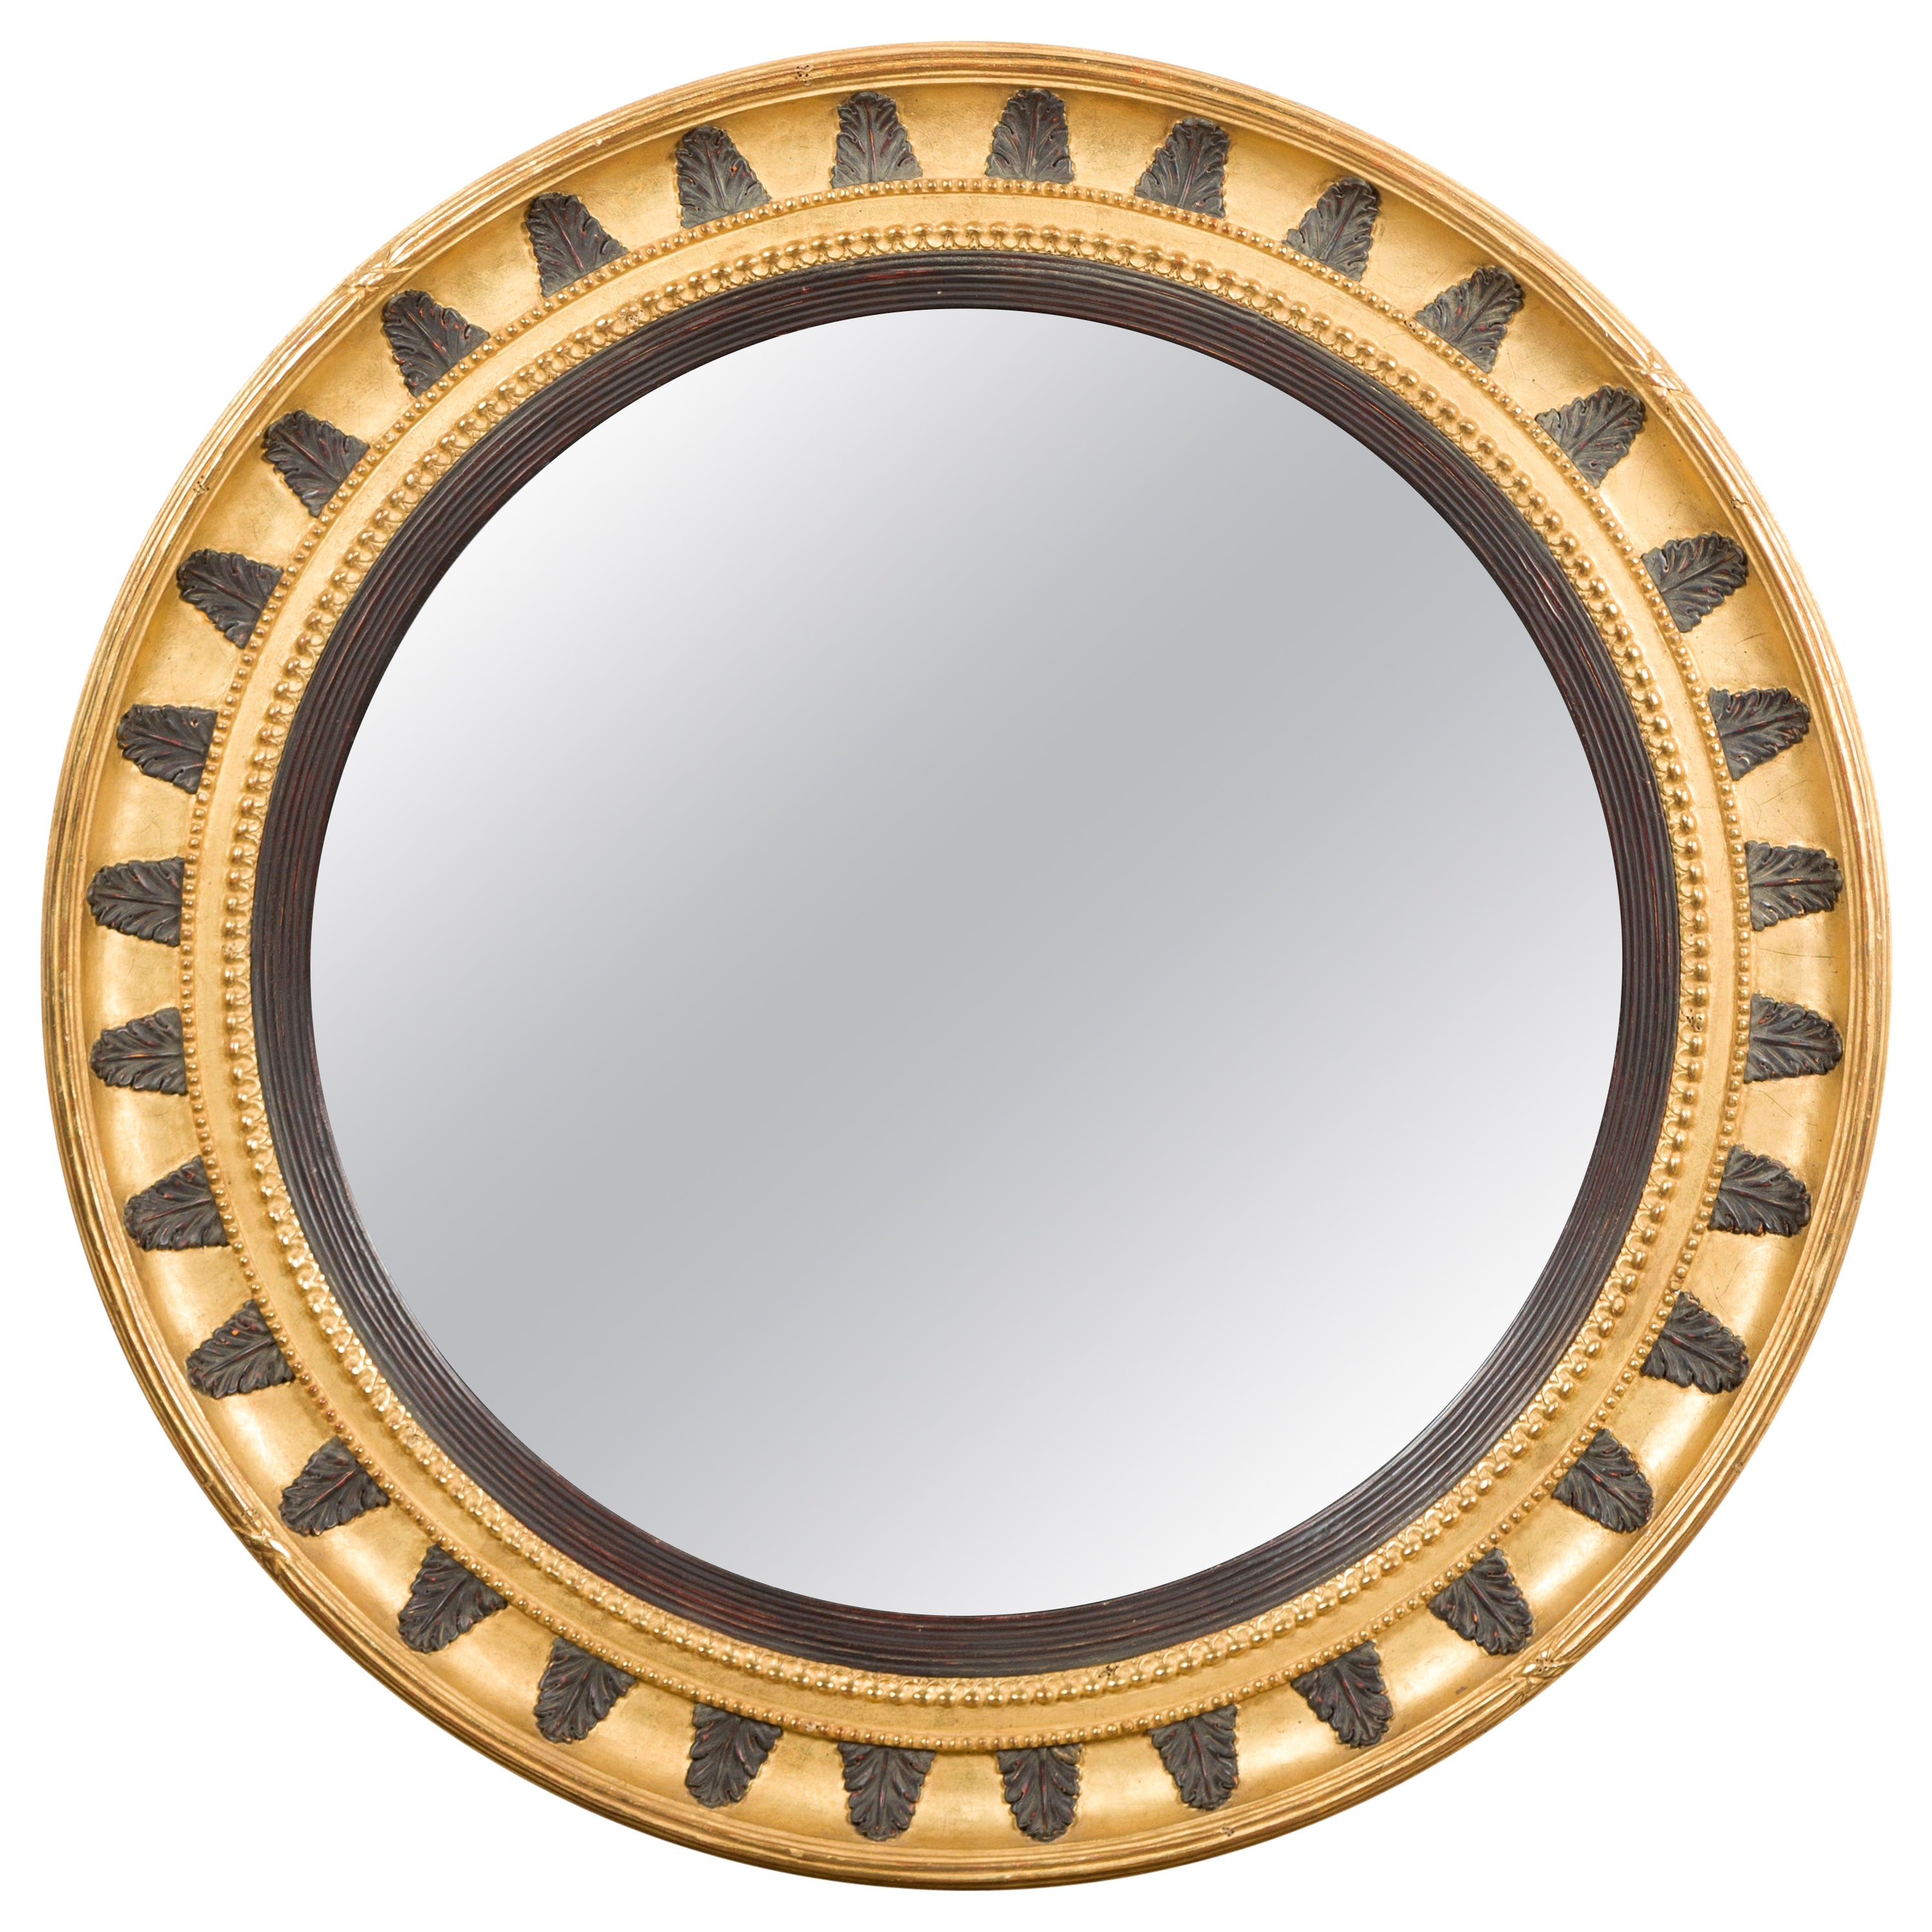 English Midcentury Bullseye Convex Mirror with Gilded Frame and Ebonized Leaves